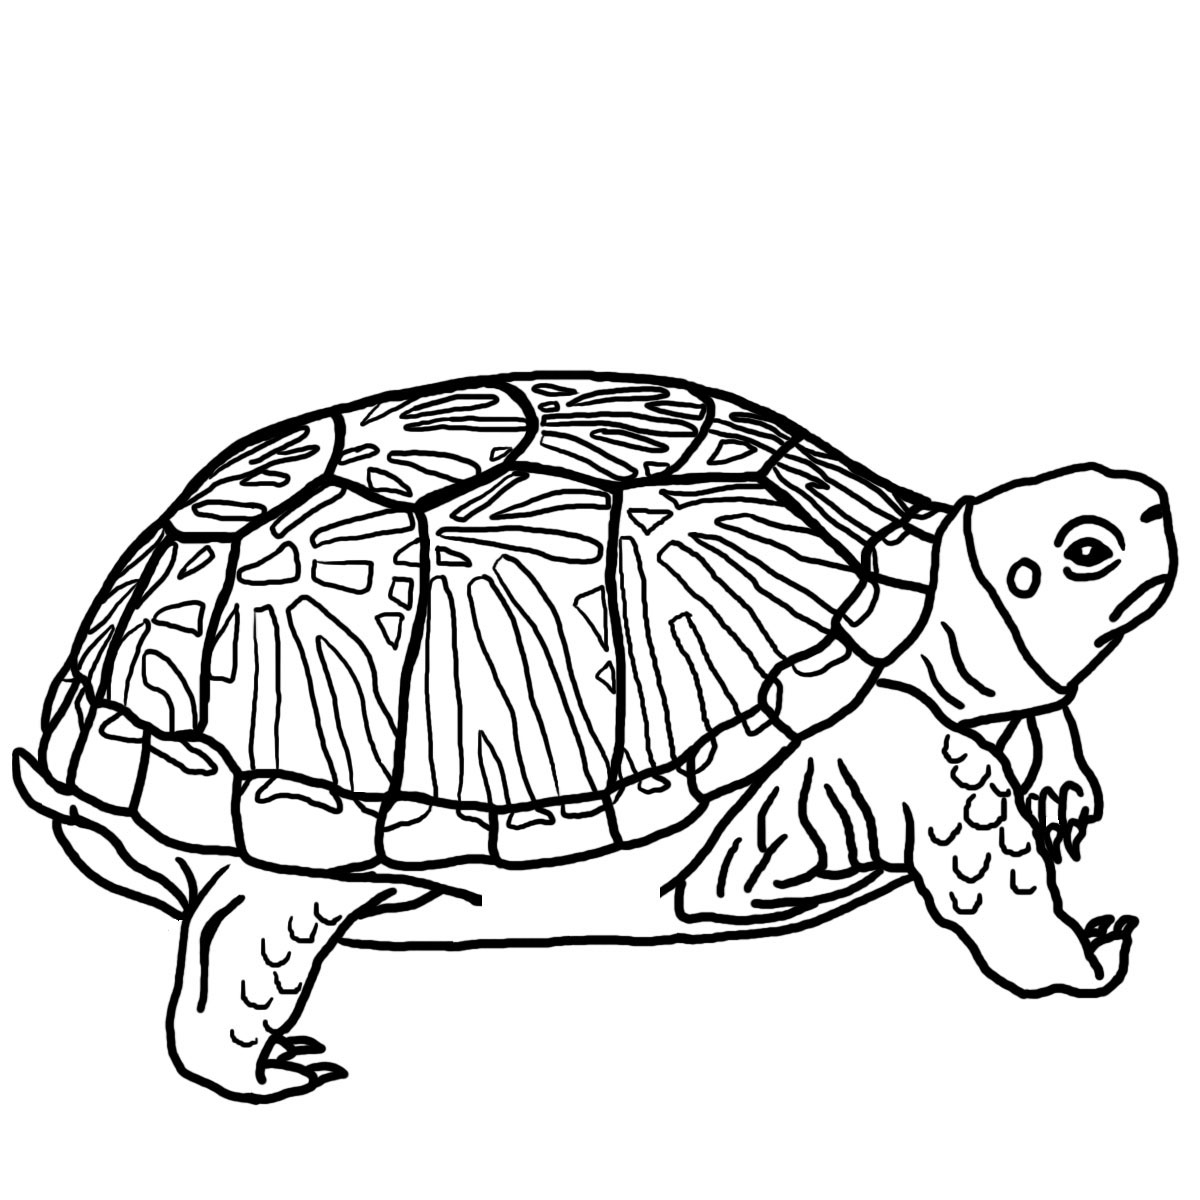 1200x1200 Free Printable Turtle Coloring Pages For Kids